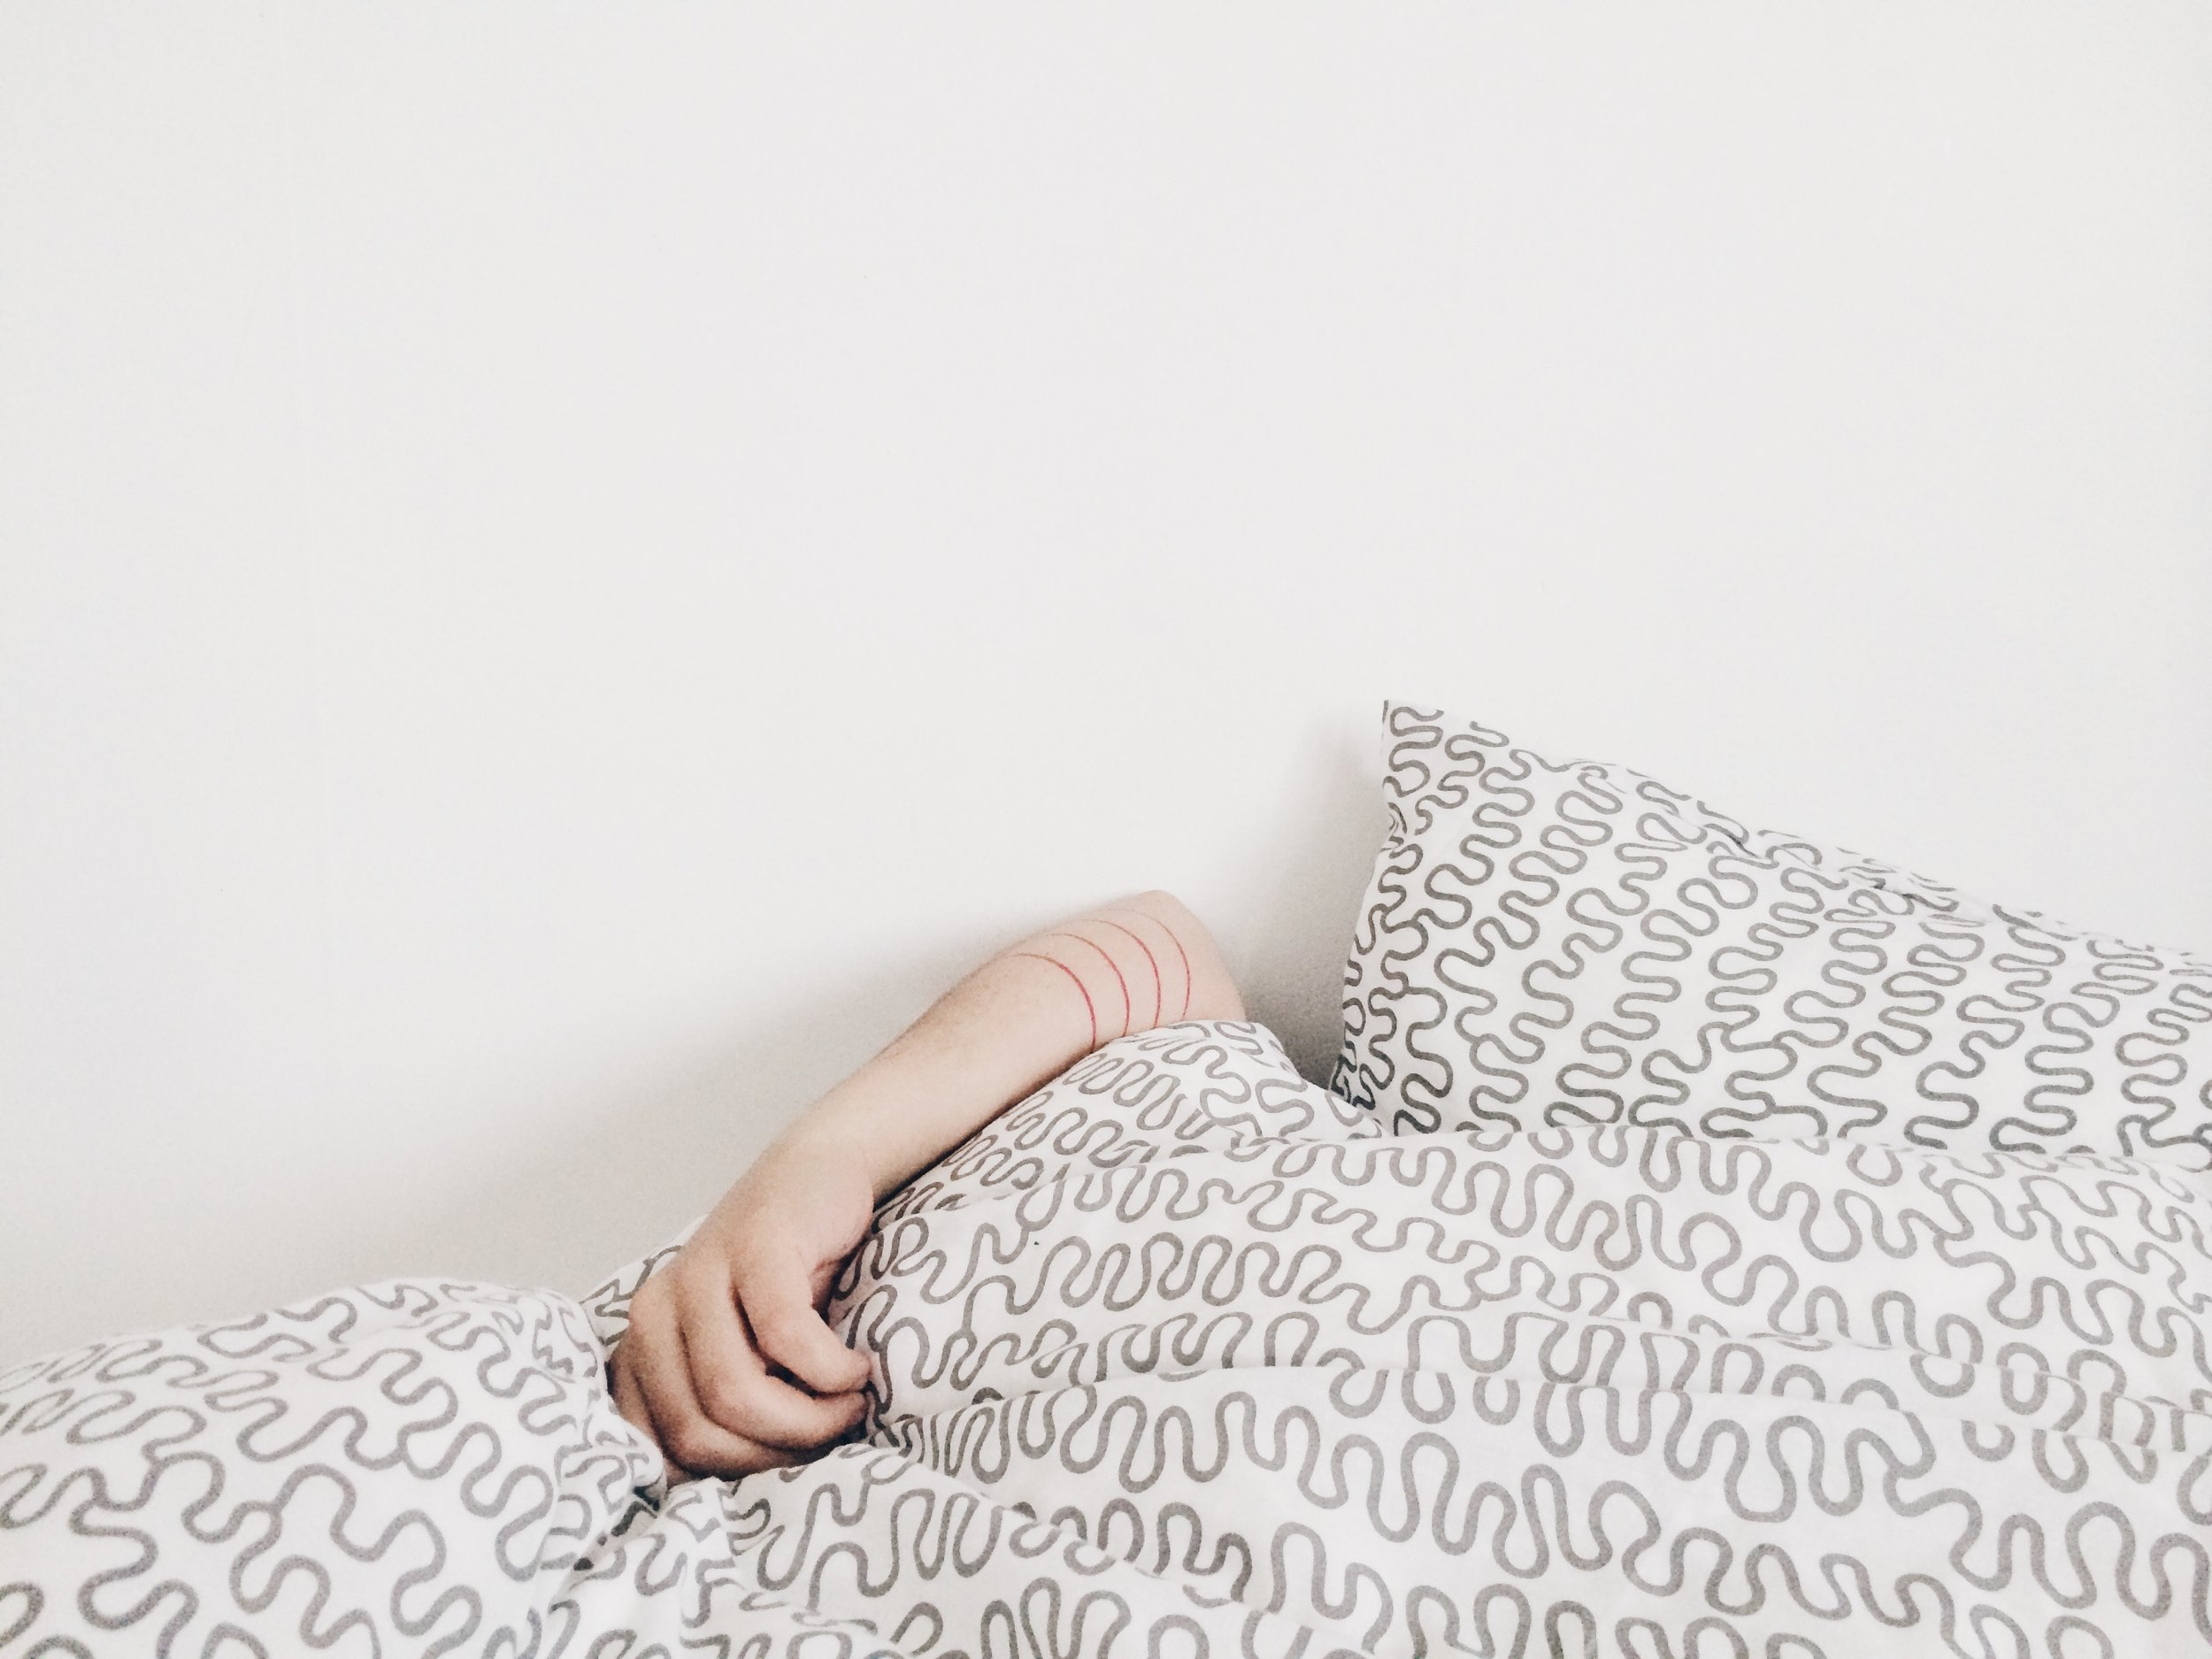 What I do know is that sleep is important, as it impacts our overall health and well-being!